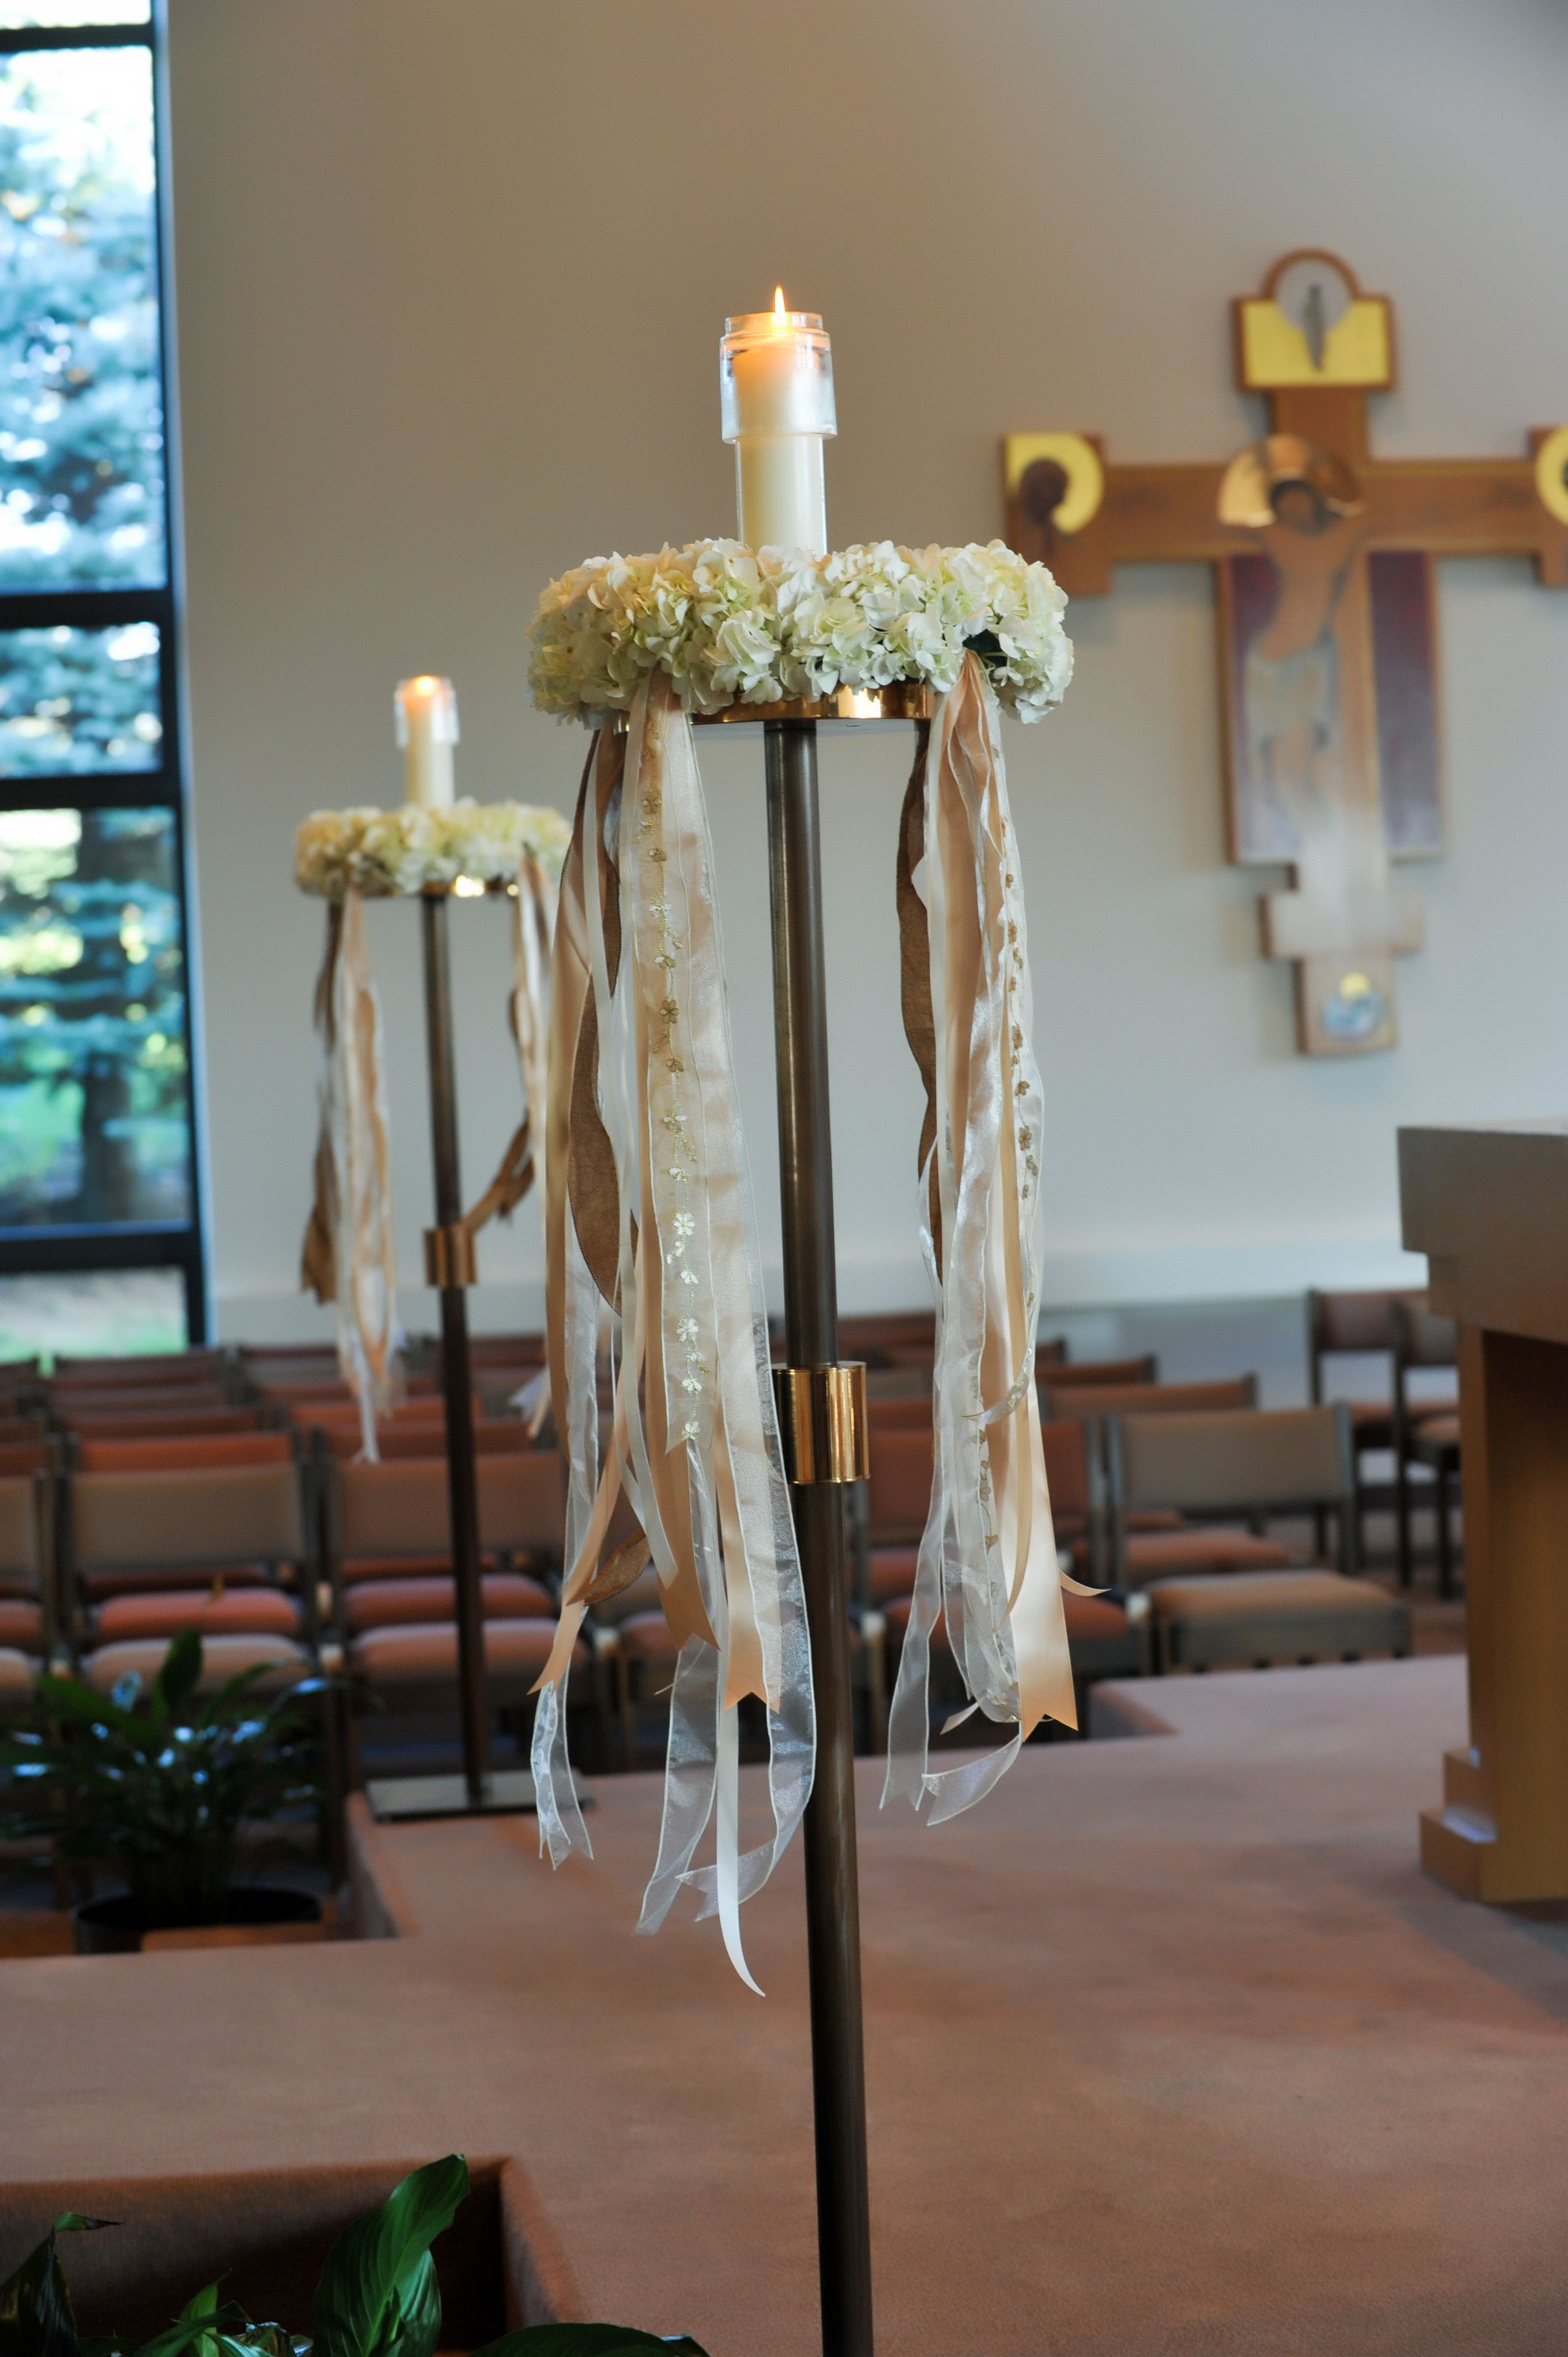 wreaths and ribbons that adorn the candles at church